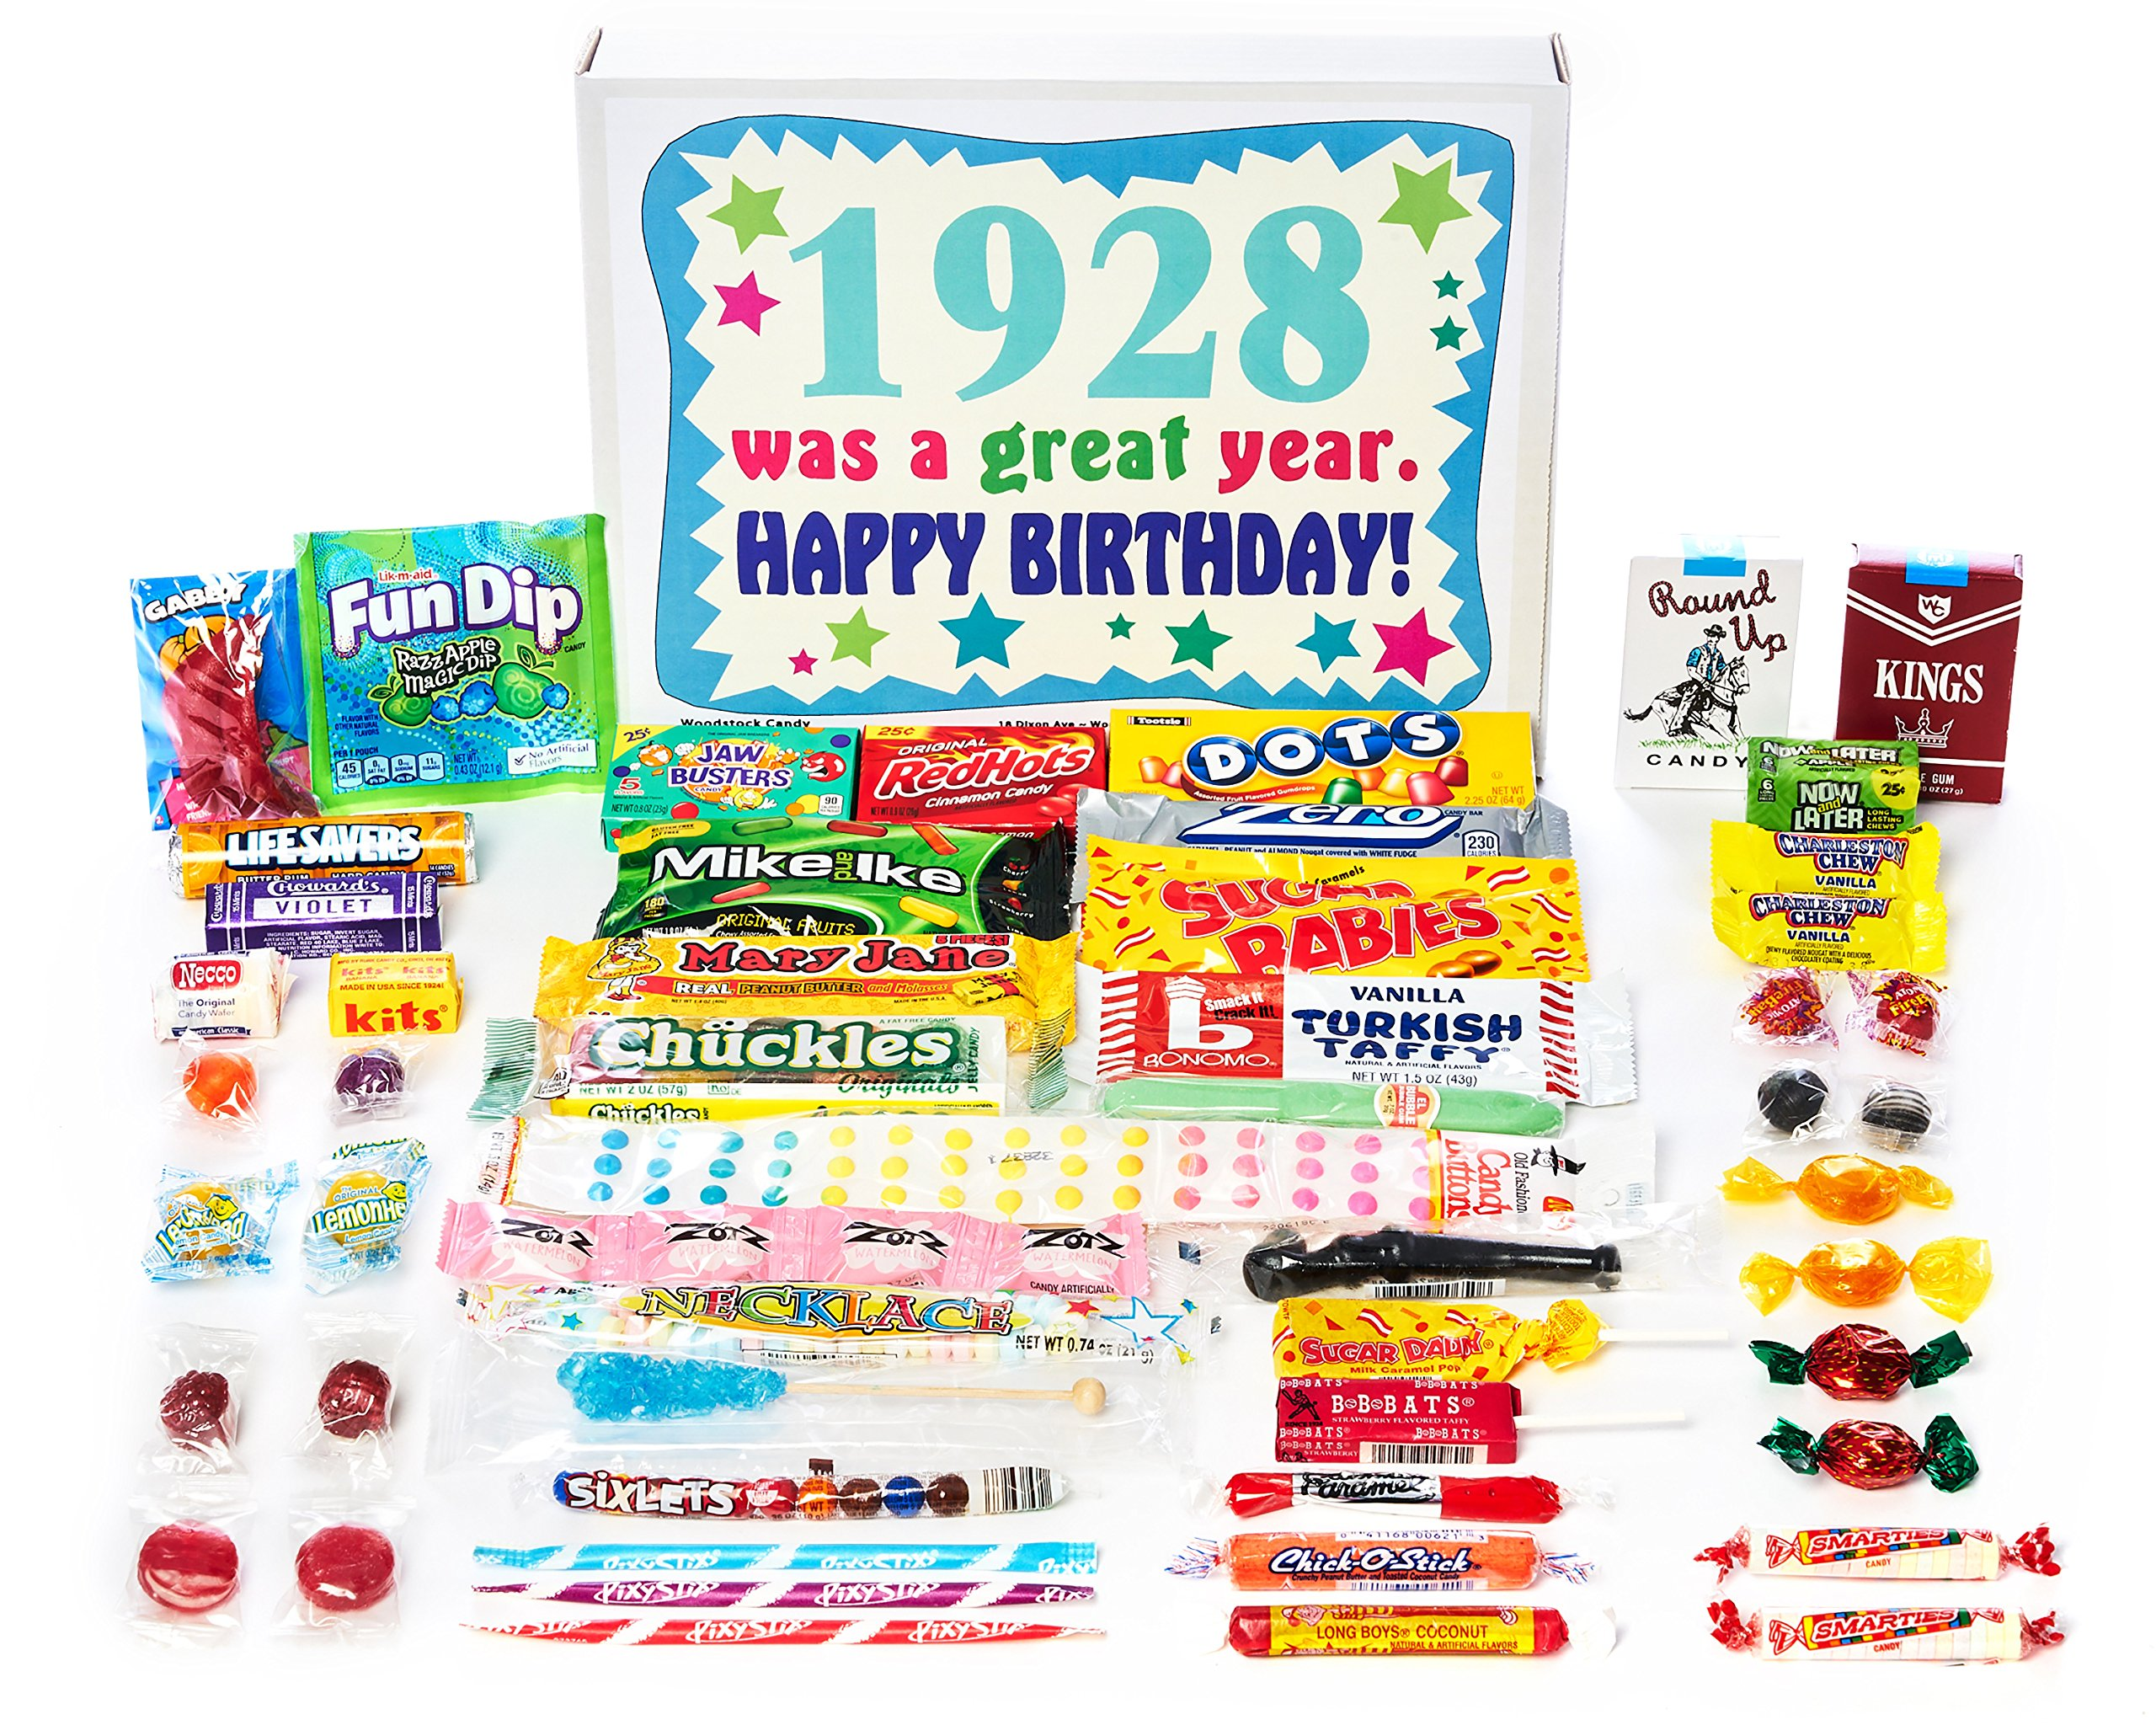 Woodstock Candy ~ 1928 91st Birthday Gift Box Vintage Nostalgic Retro Candy Assortment from Childhood for 91 Year Old Man or Woman Born 1928 by Woodstock Candy